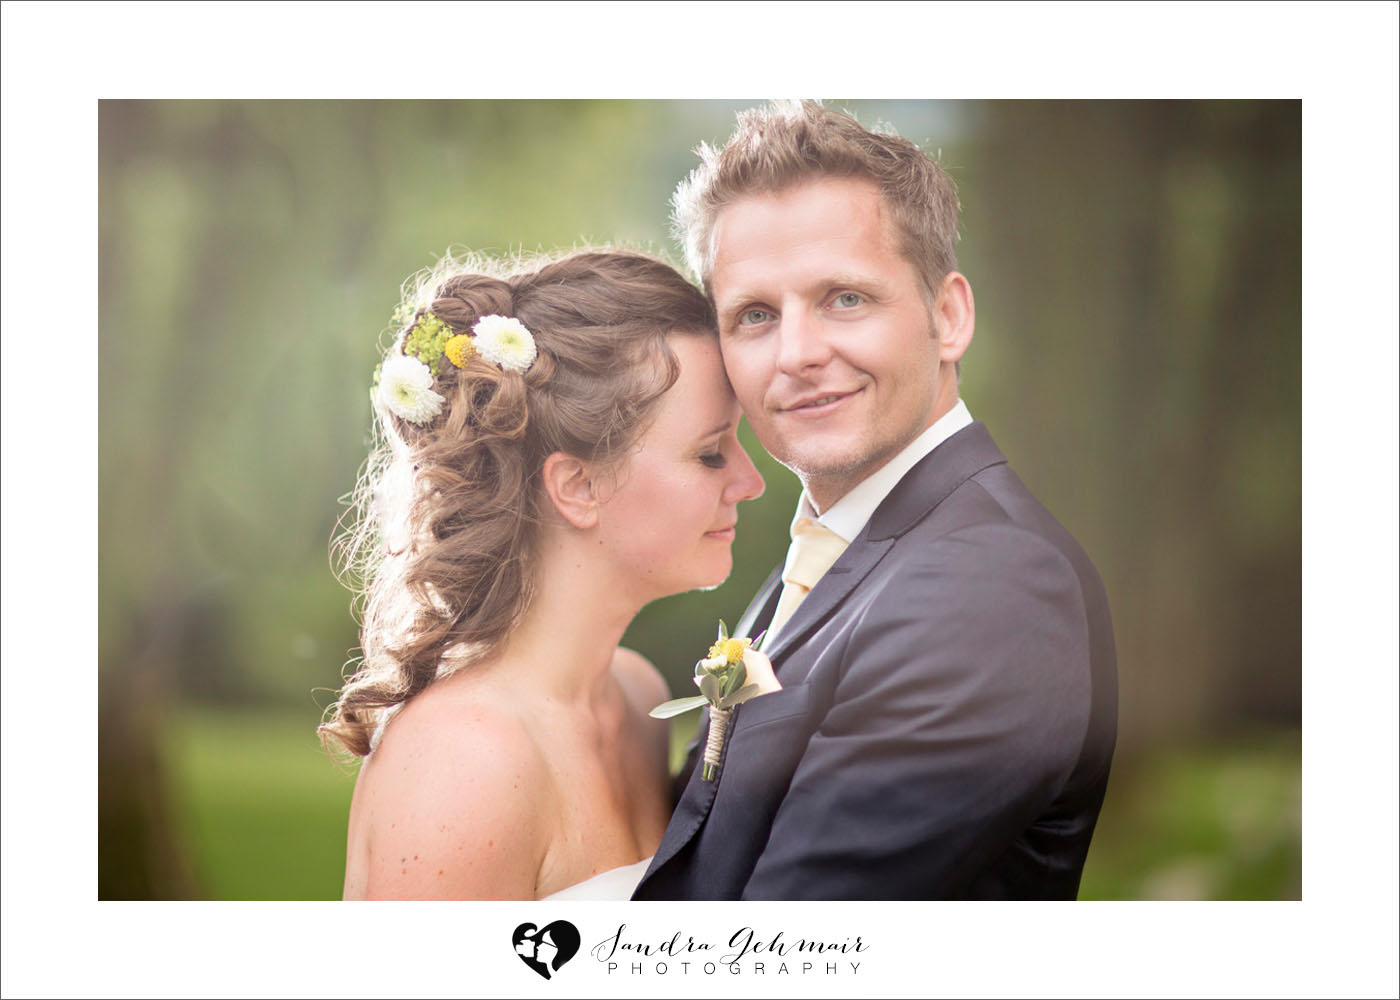 043_heiraten_am_see_spitzvilla_sandra_gehmair